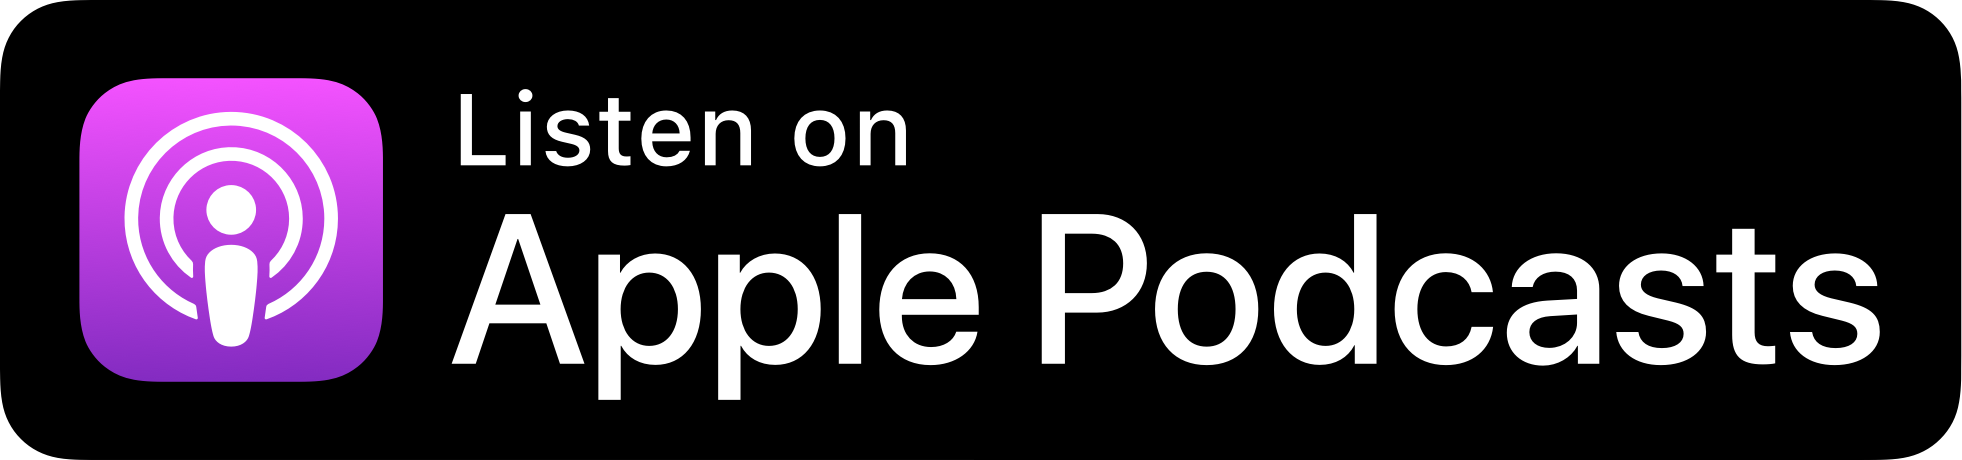 Link to Apple Podcasts